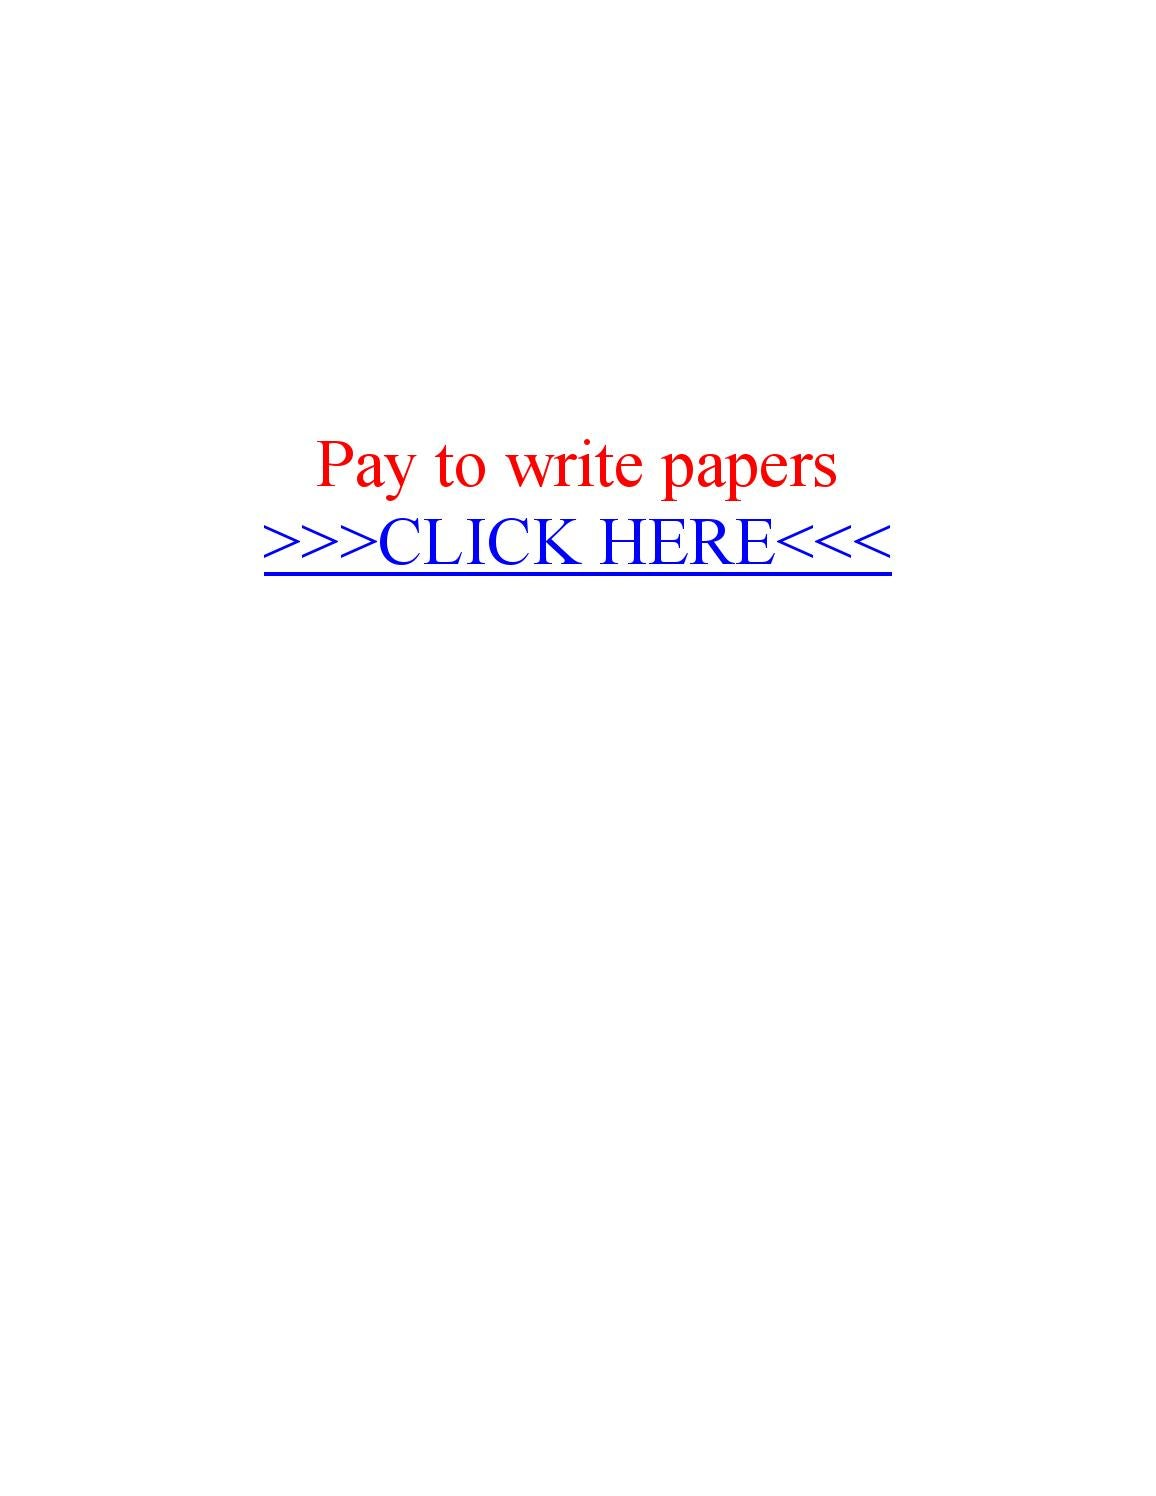 Pay writing paper